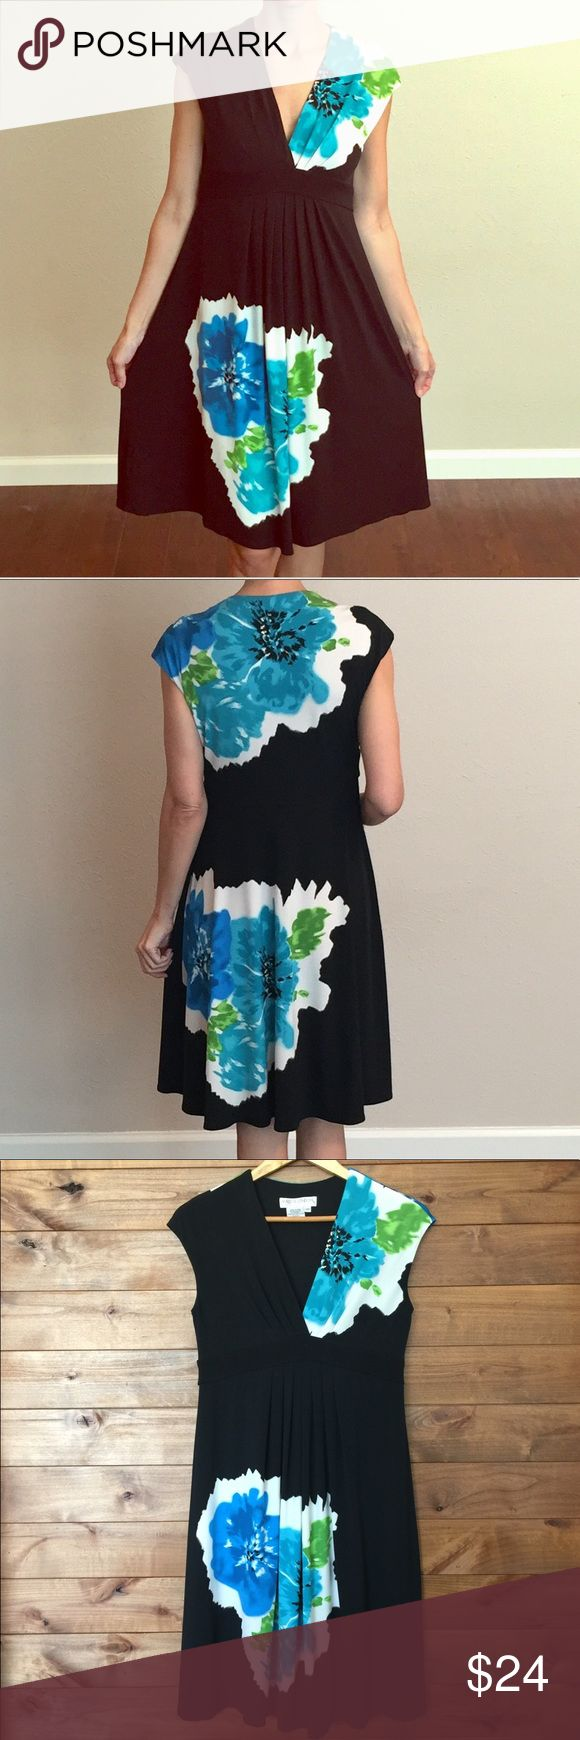 """Maggy London Black Floral V-neck Dress 10 Petite Gorgeous Floral Print on a solid black background. Green, blue and white flowers. Knee-length // V-neck // Empire waist // Perfect condition  Length: 38"""" Bust: 17"""" Maggy London Dresses Midi"""